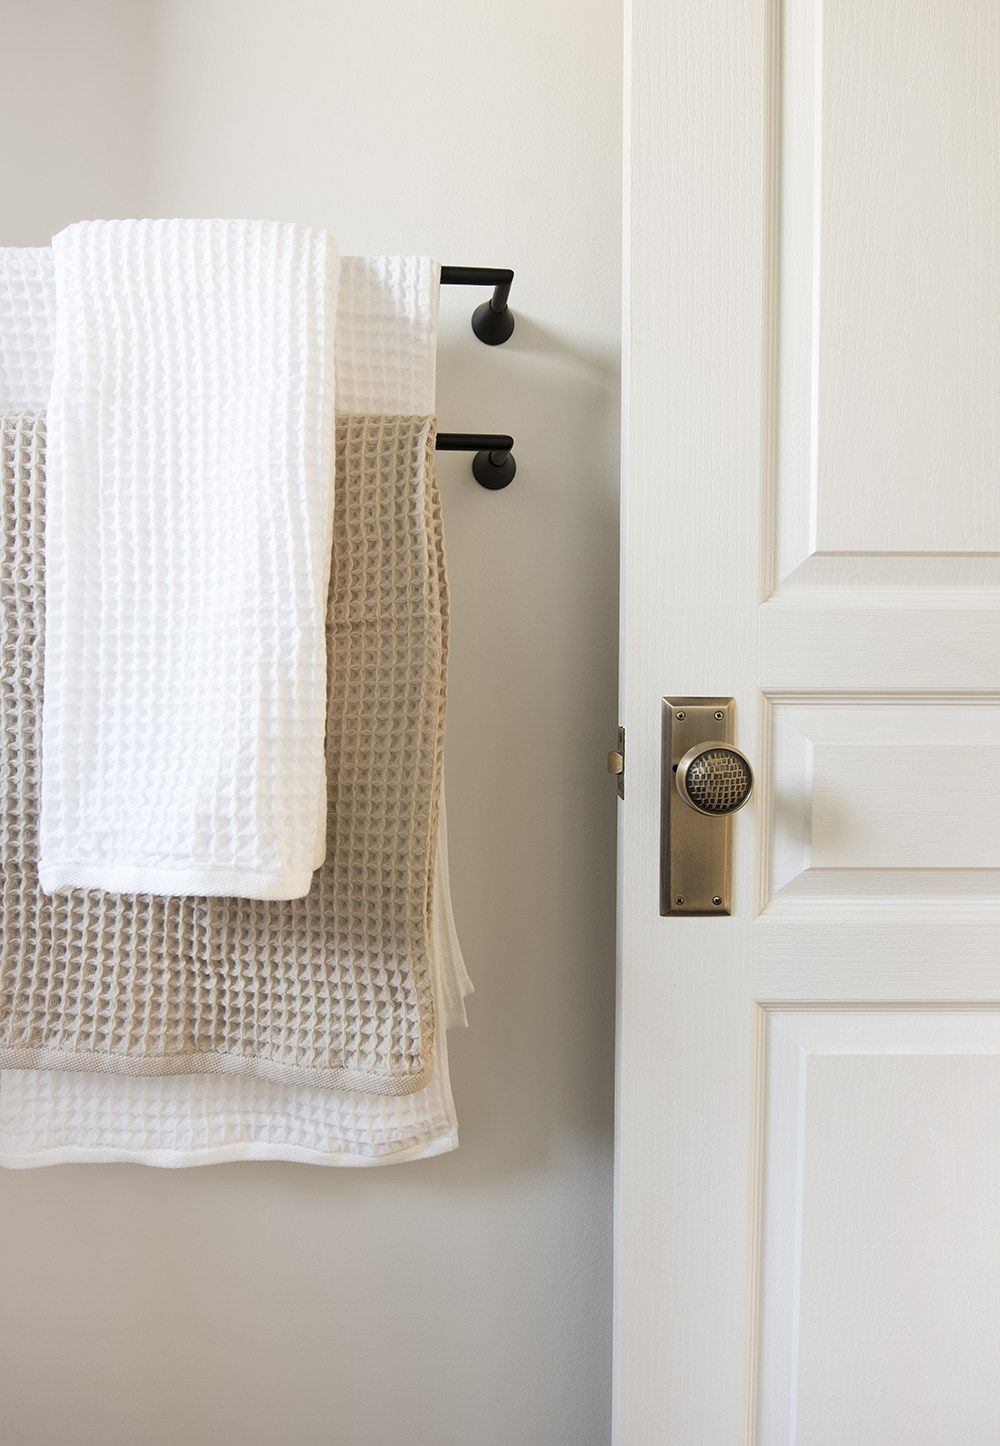 Softest Bath Towels The Softest Bath Towels For The New Year  Towels Bath And Interiors